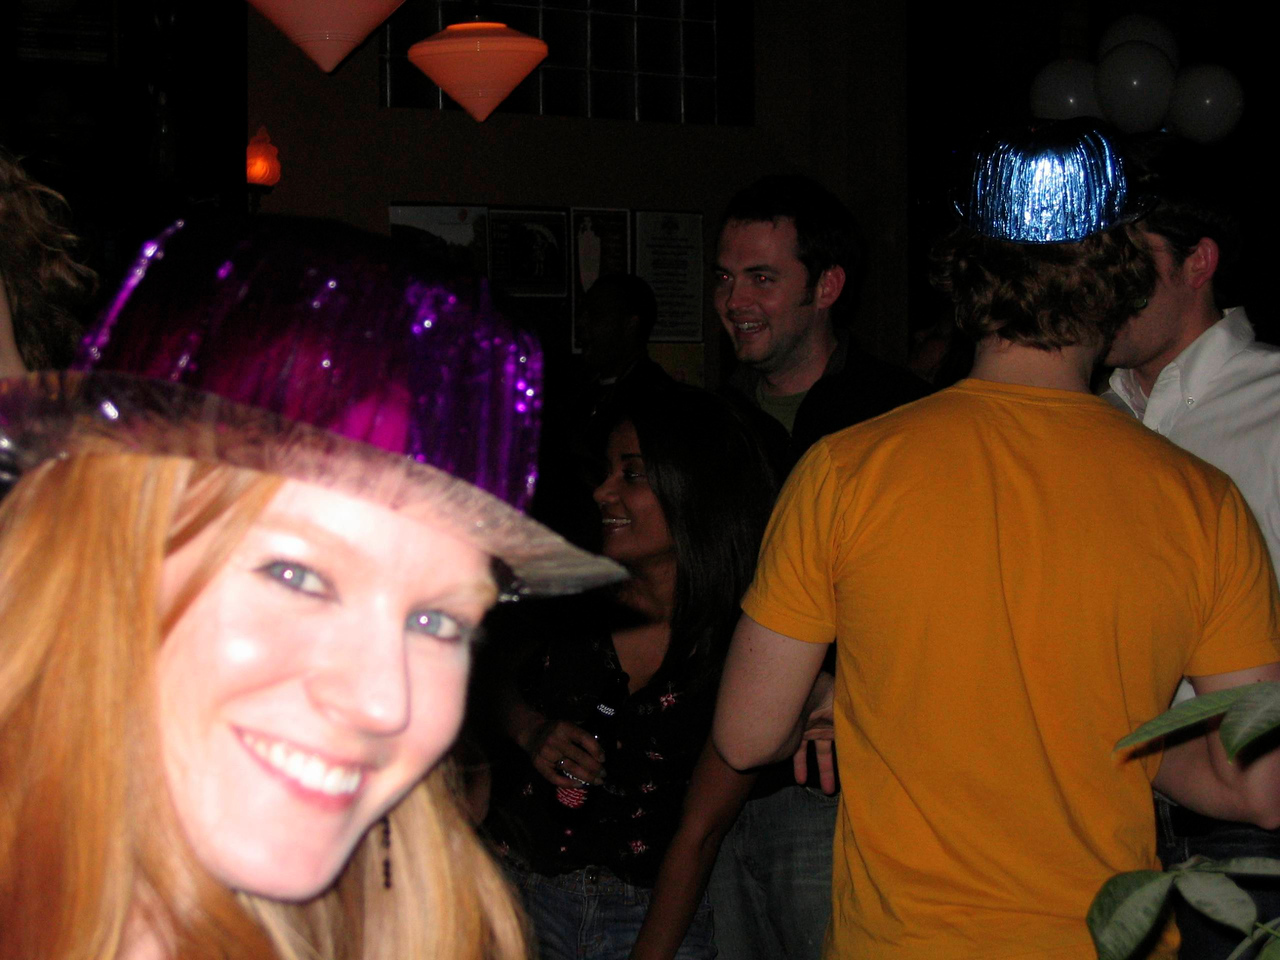 """Erica w/ the guy (in yellow) to whom she said he had a """"big head"""""""